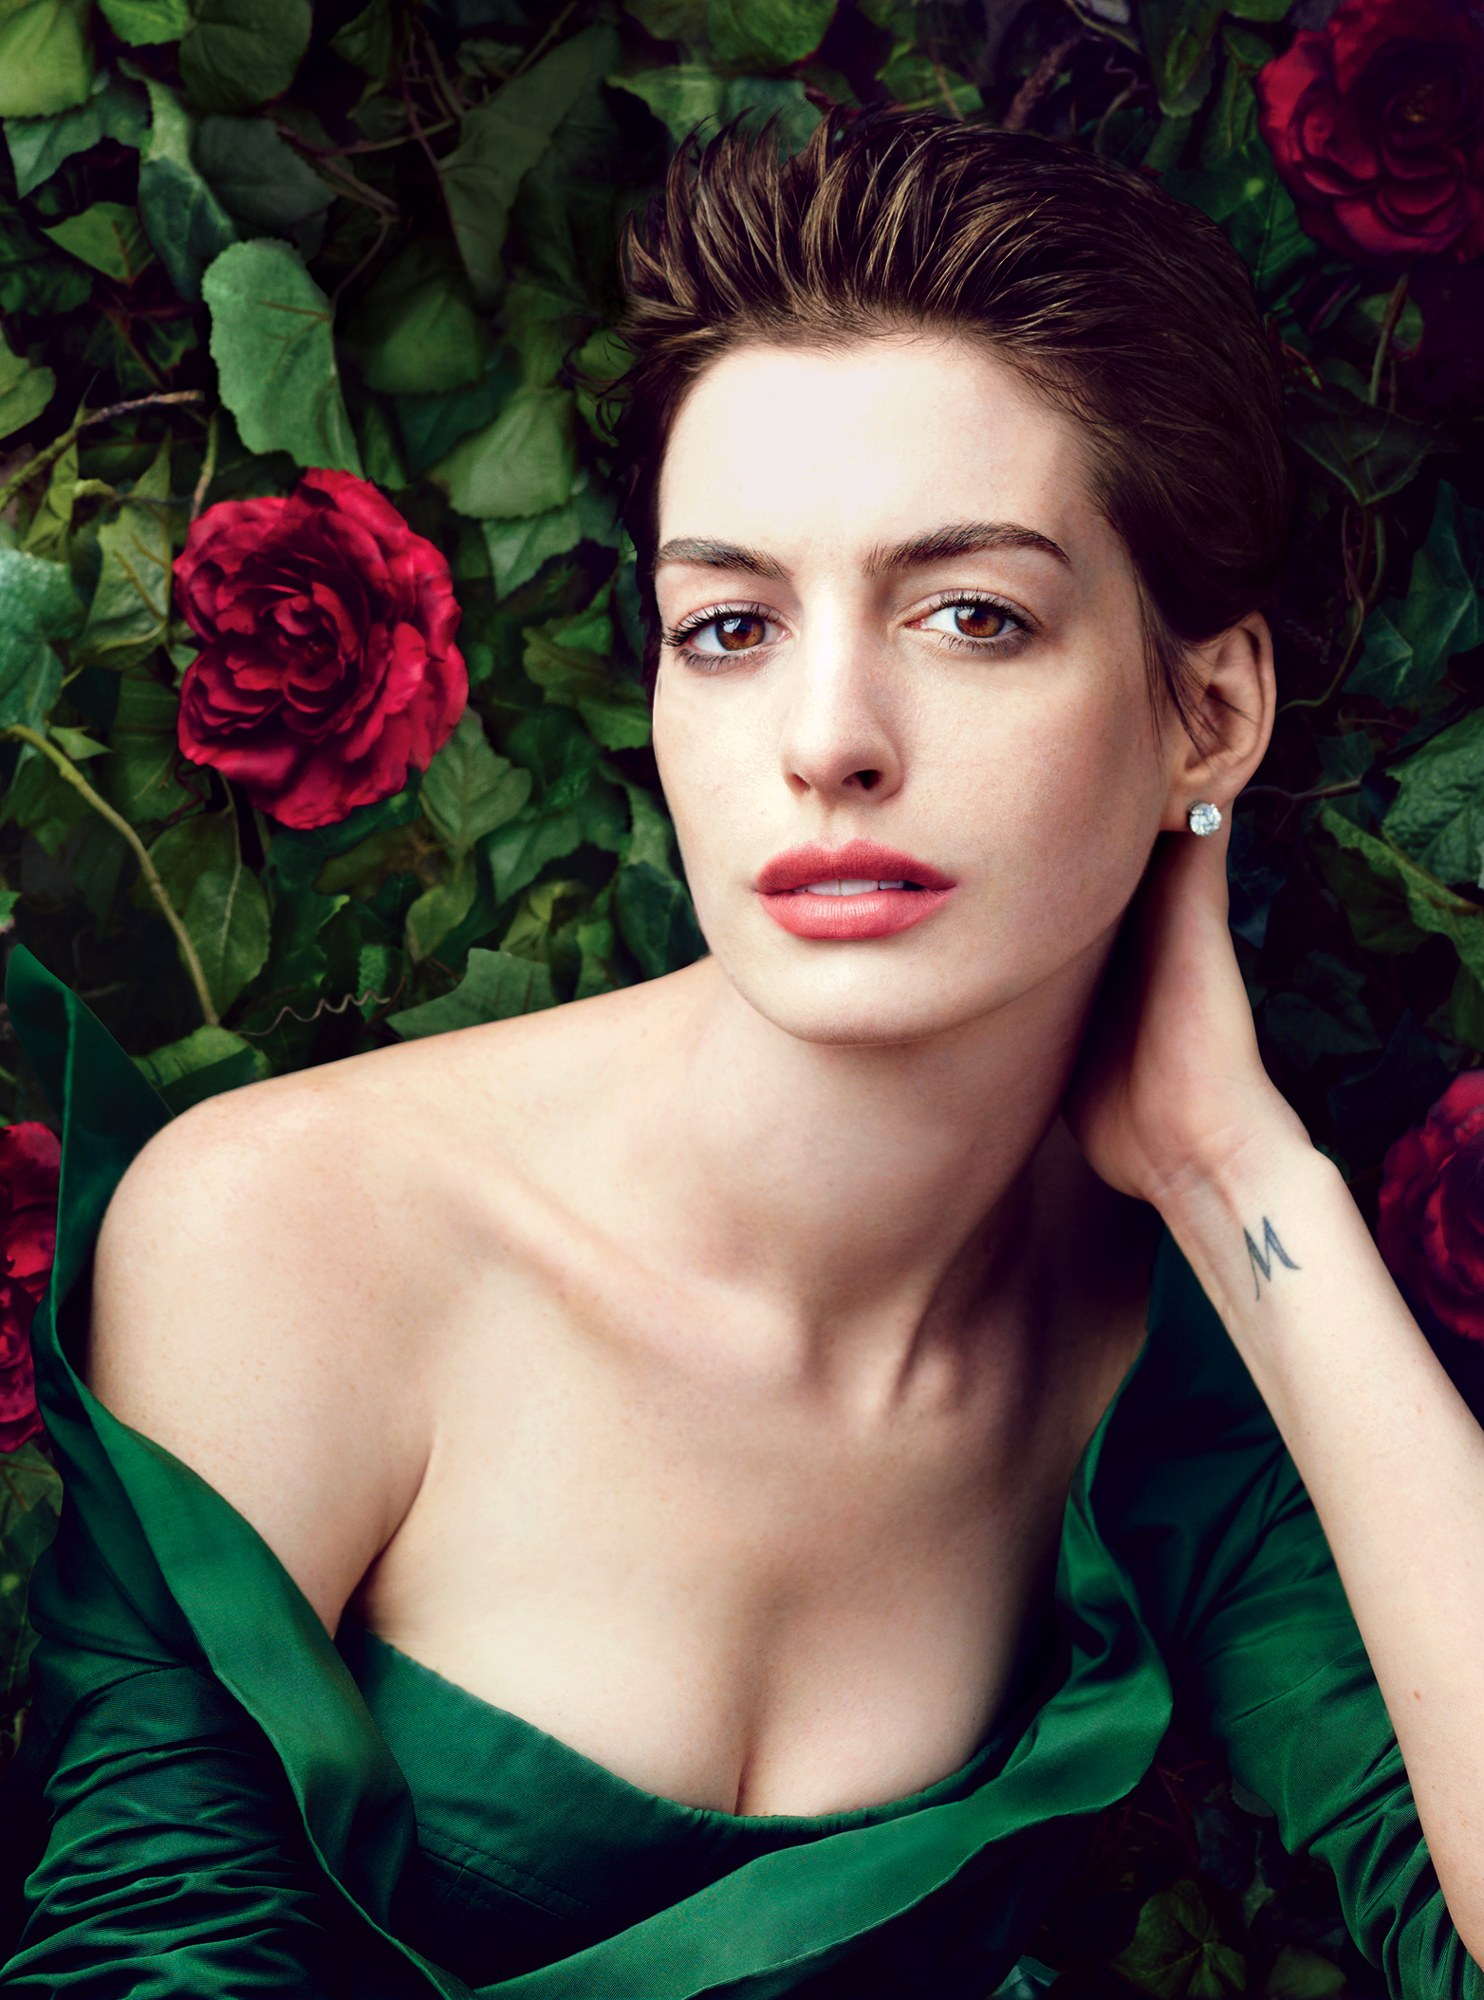 40+ Anne Hathaway Hot Photos In Bikini & Shorts Pictures